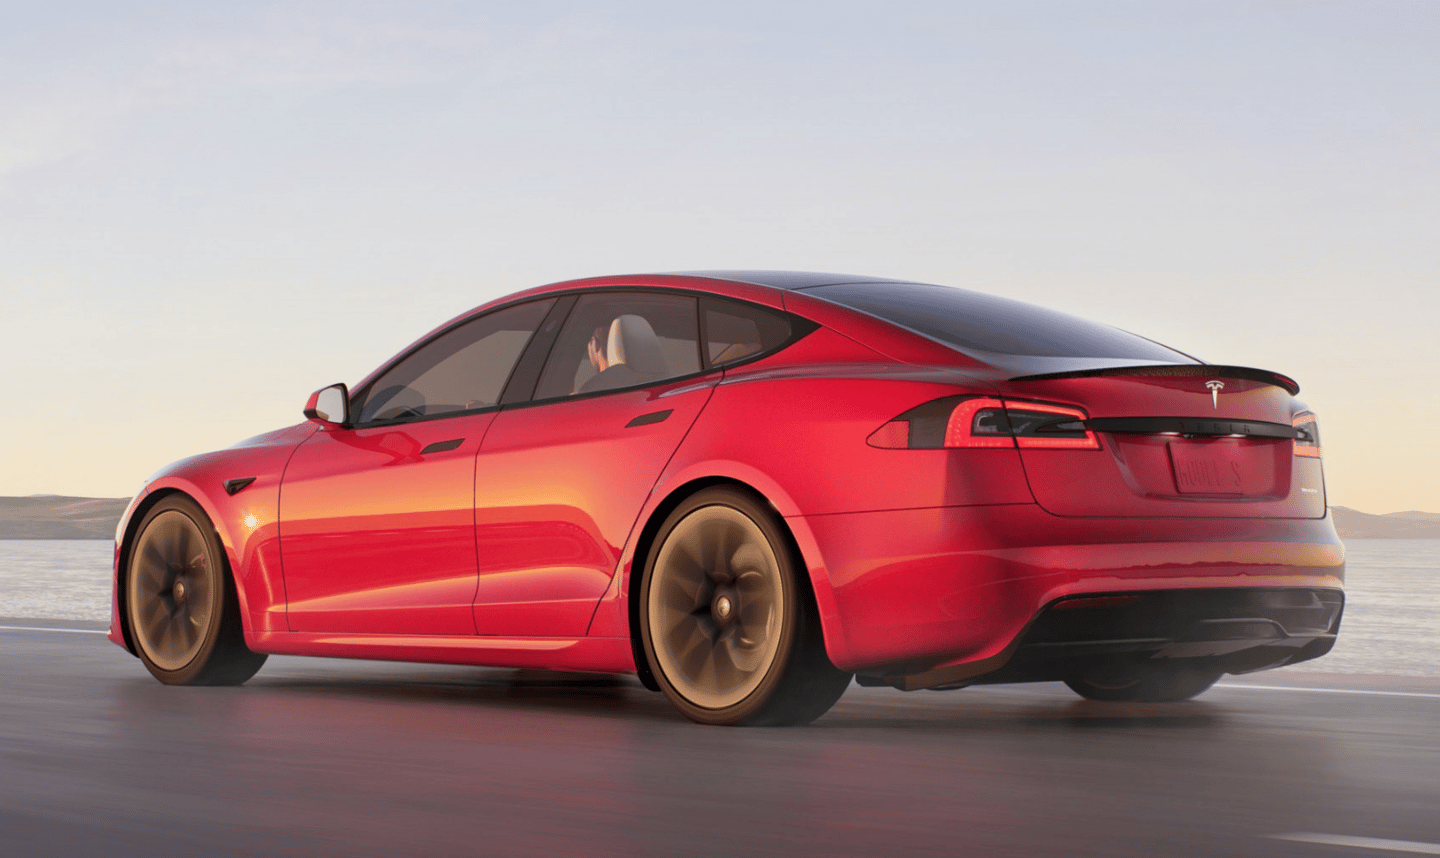 The Model S Plaid+ offers more than 1,100 horsepower, 520 miles of range, sub-2 second 0-60 acceleration, sub-9 second quarter miles and 200 mph top speeds